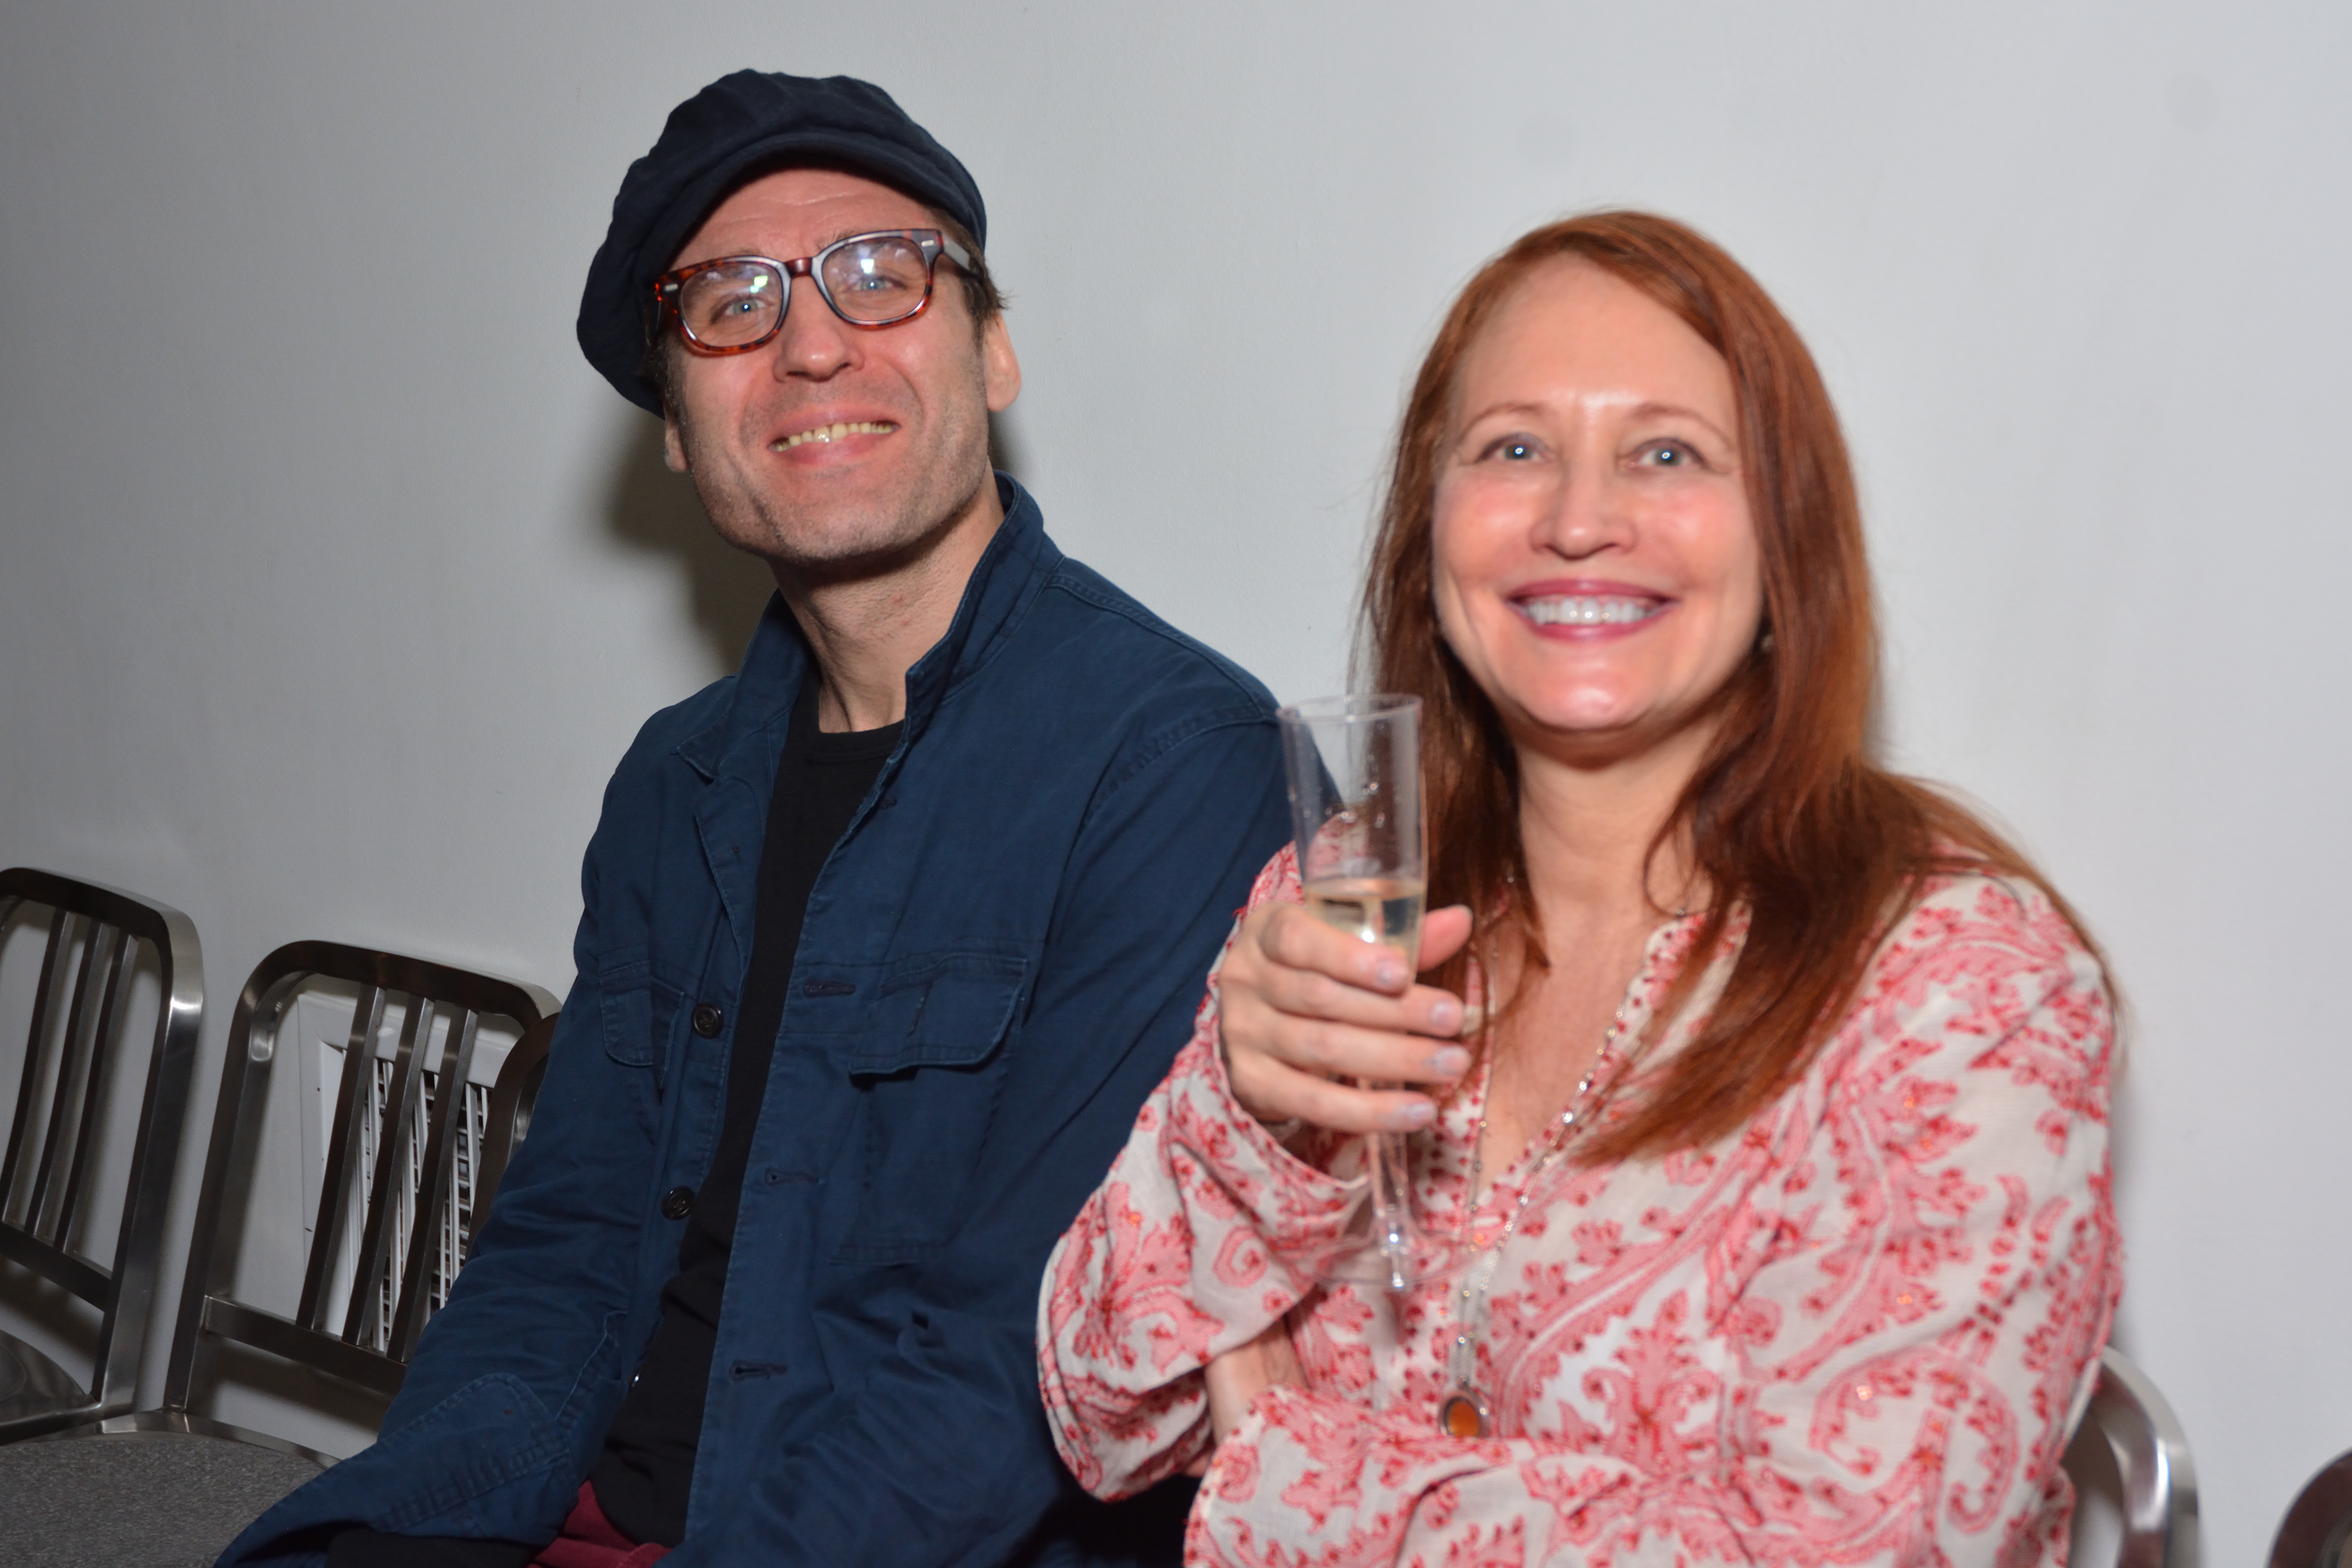 Actor Julian Elfer and artist Susan Woldman